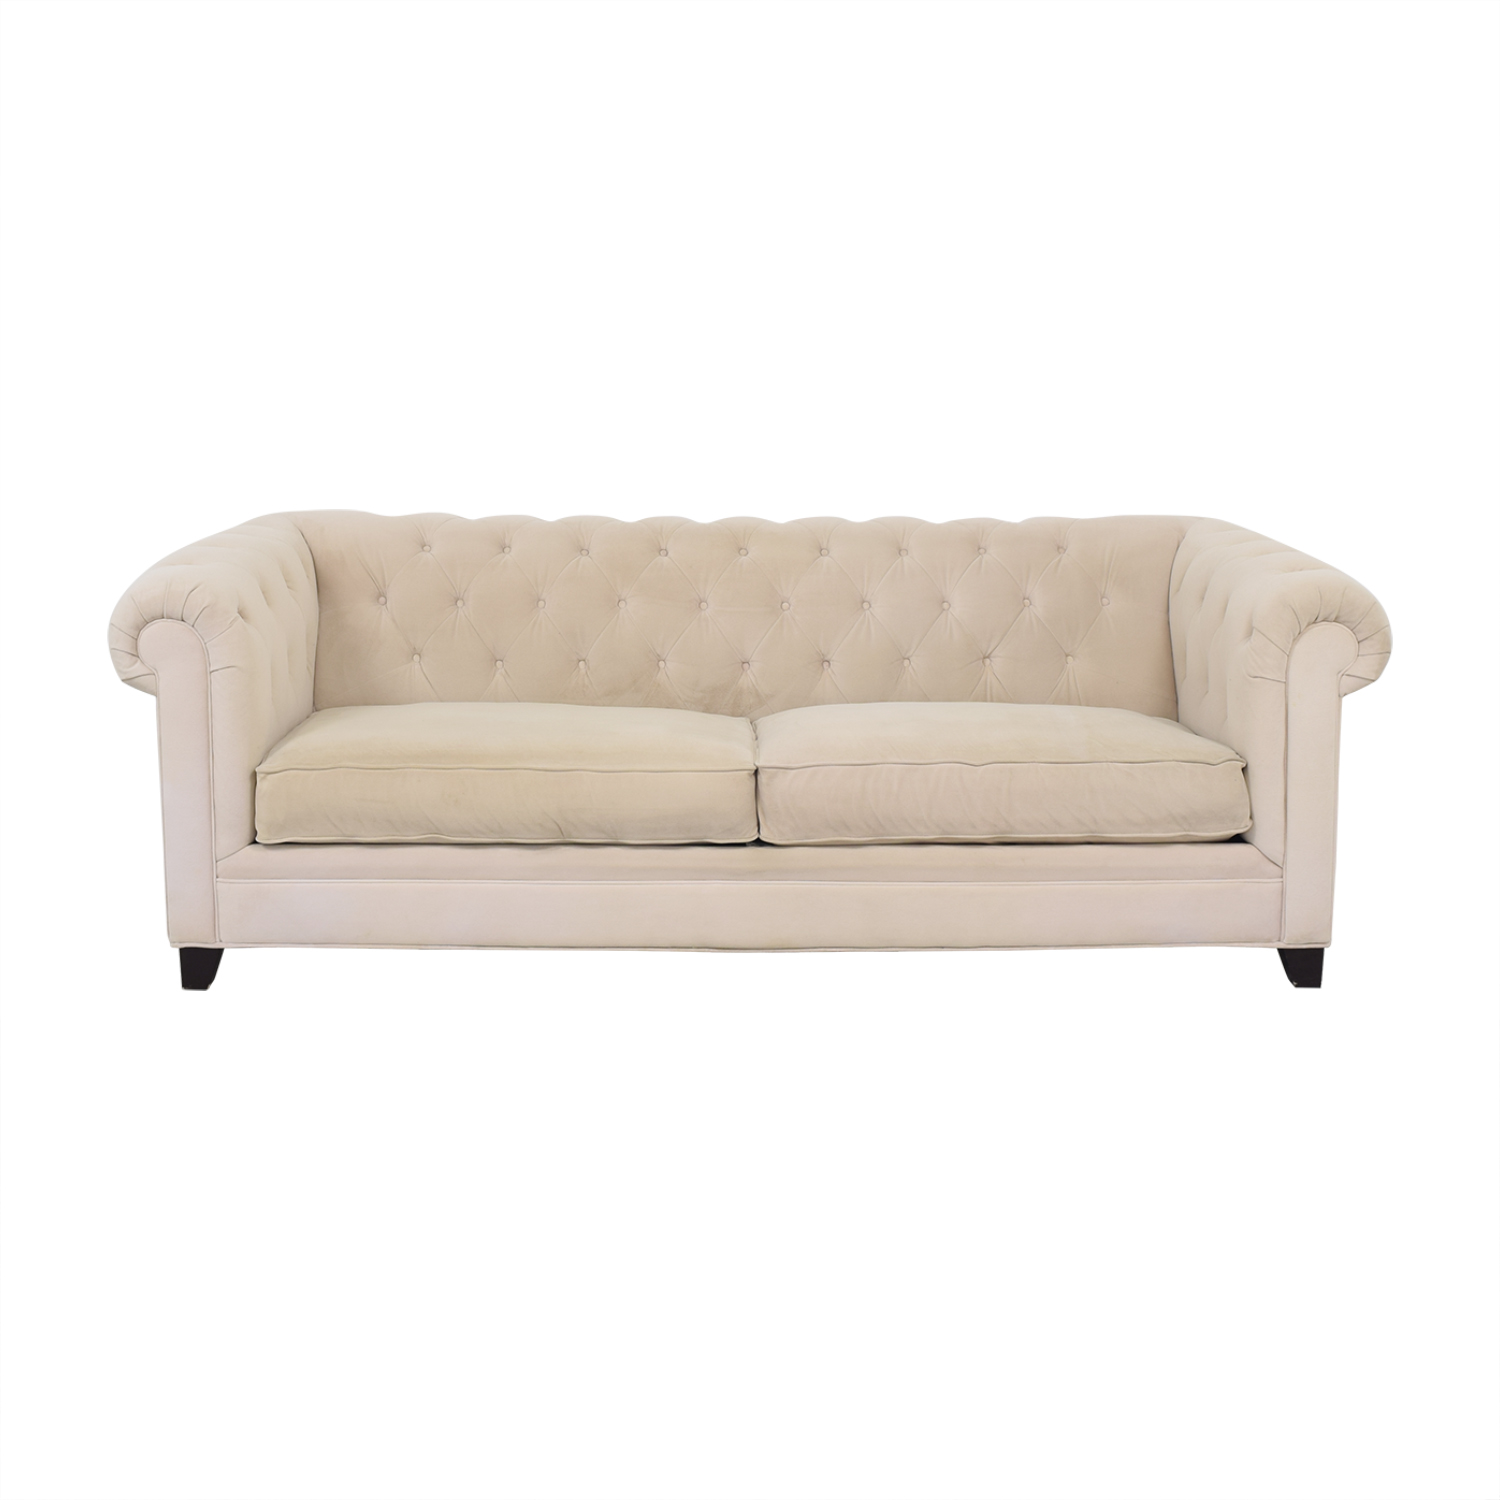 Macy's Martha Stewart Collection Saybridge Sofa Macy's